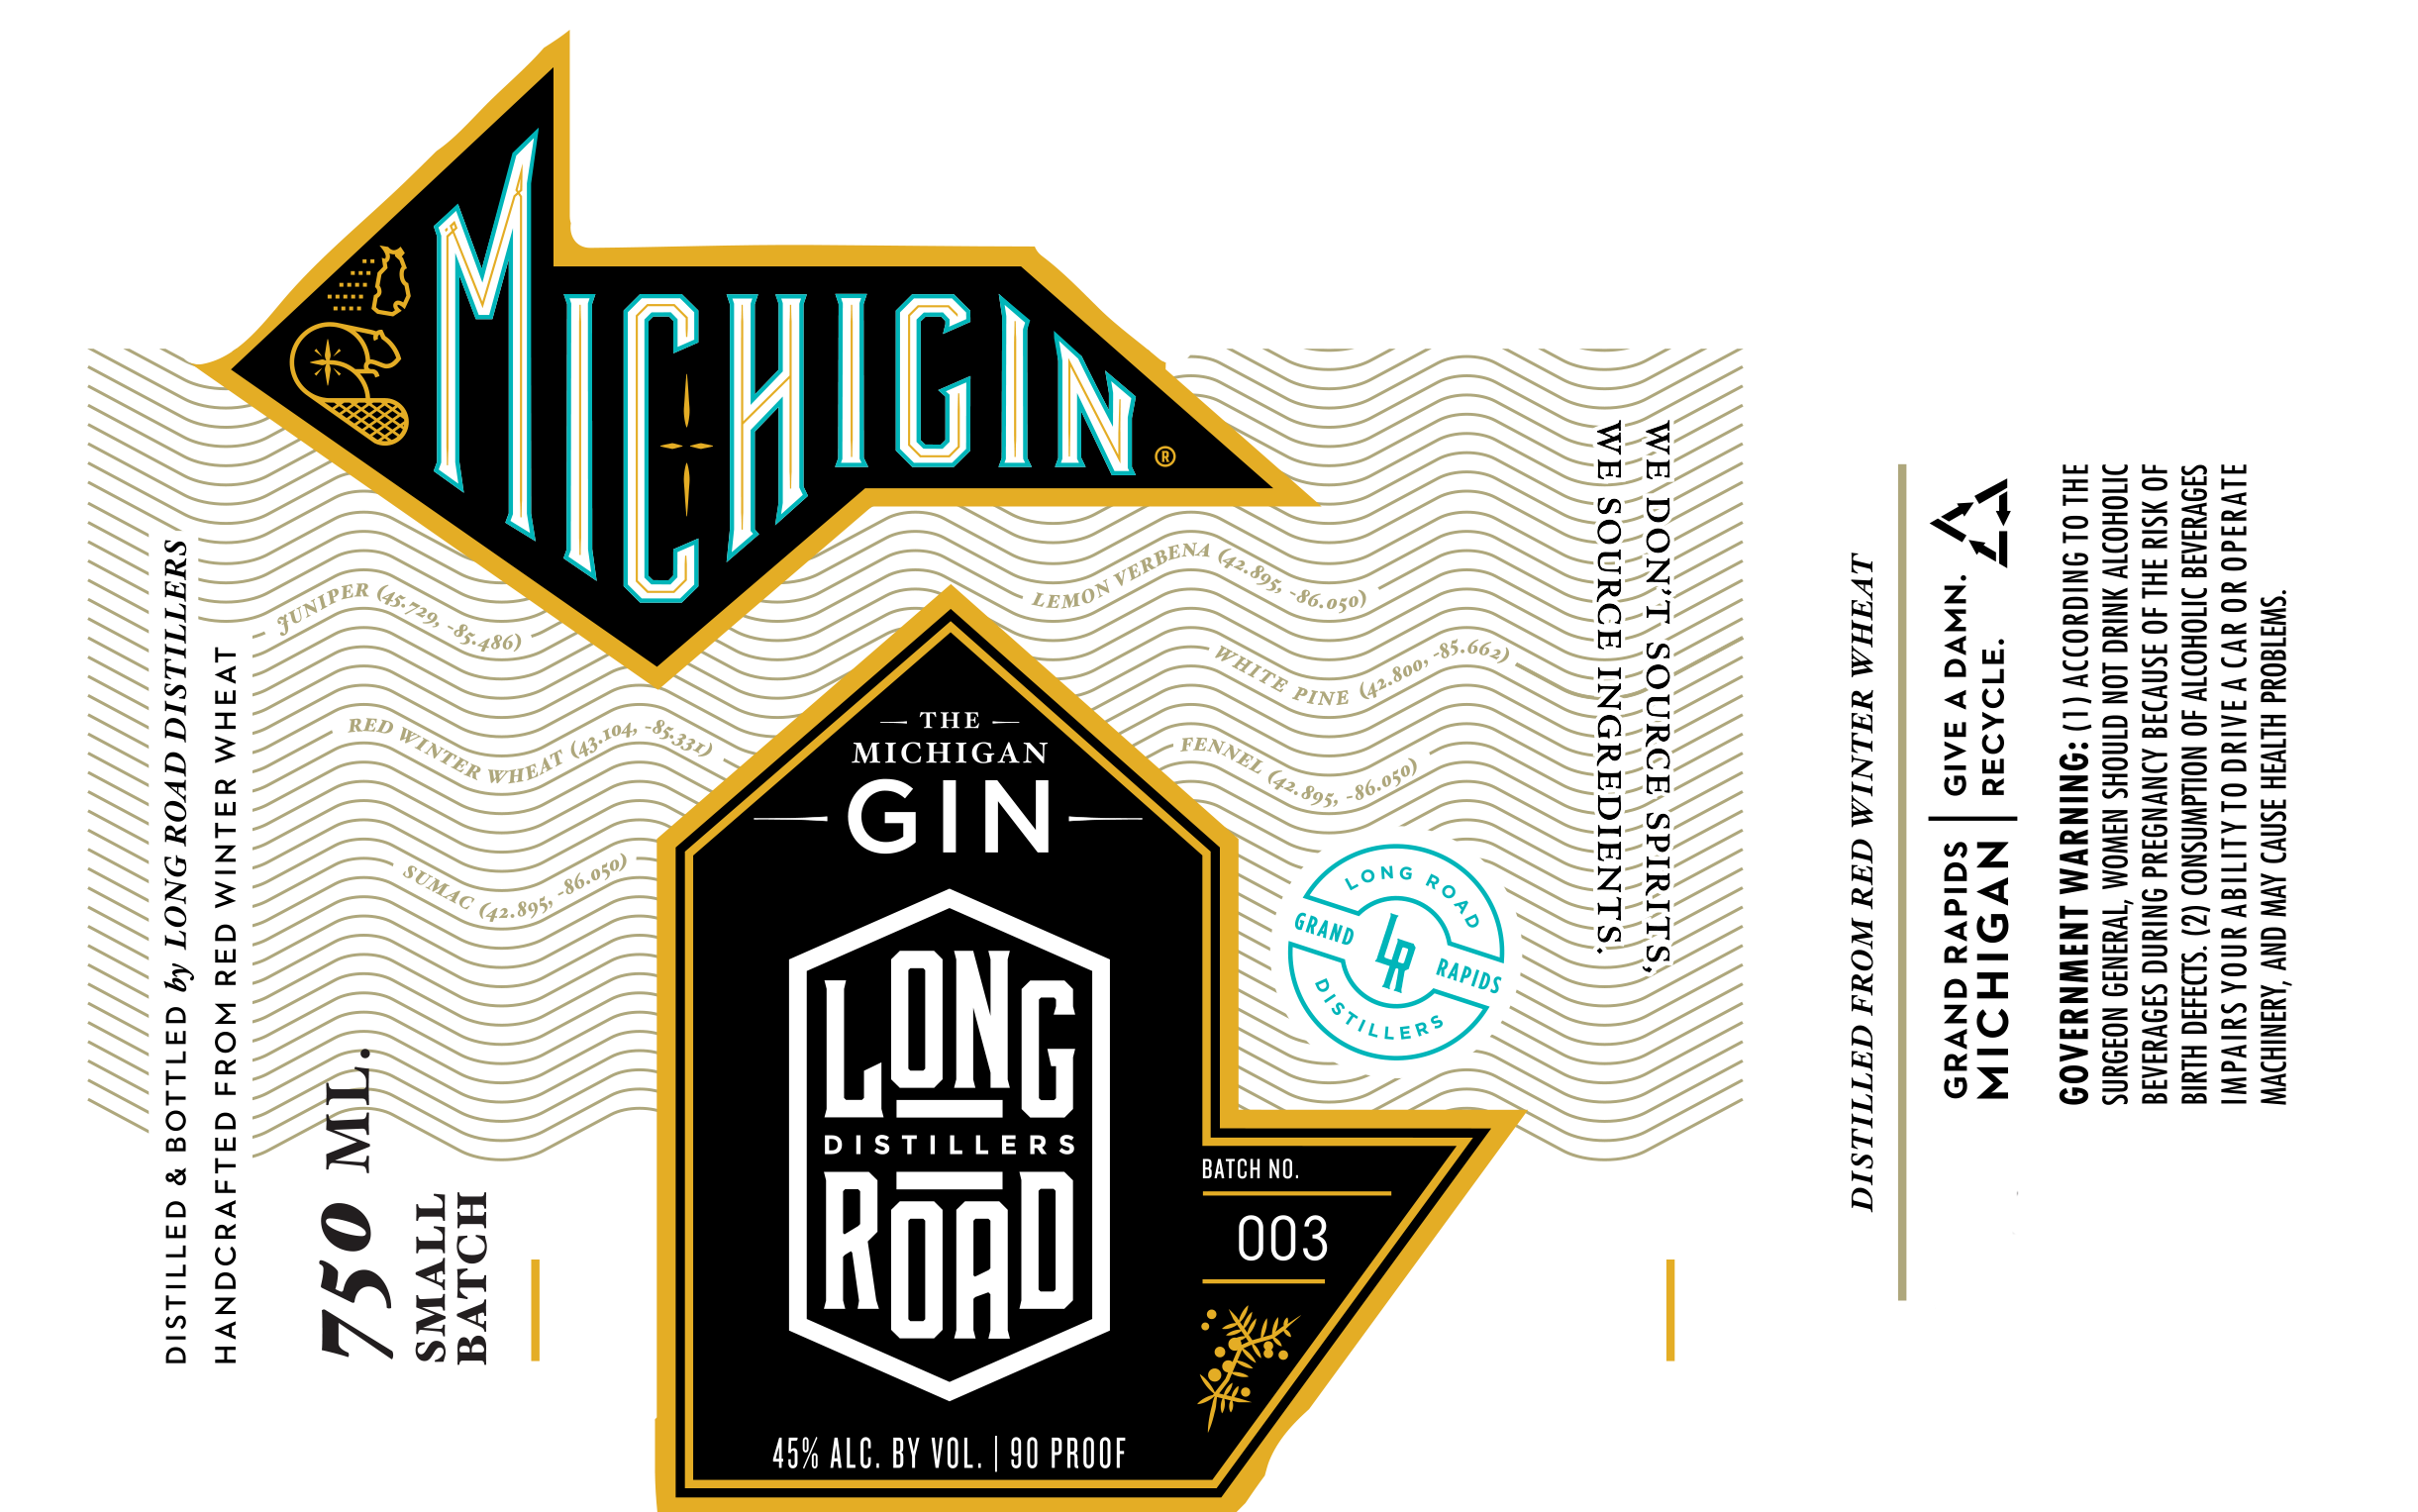 MICHIN Long Road Distillers